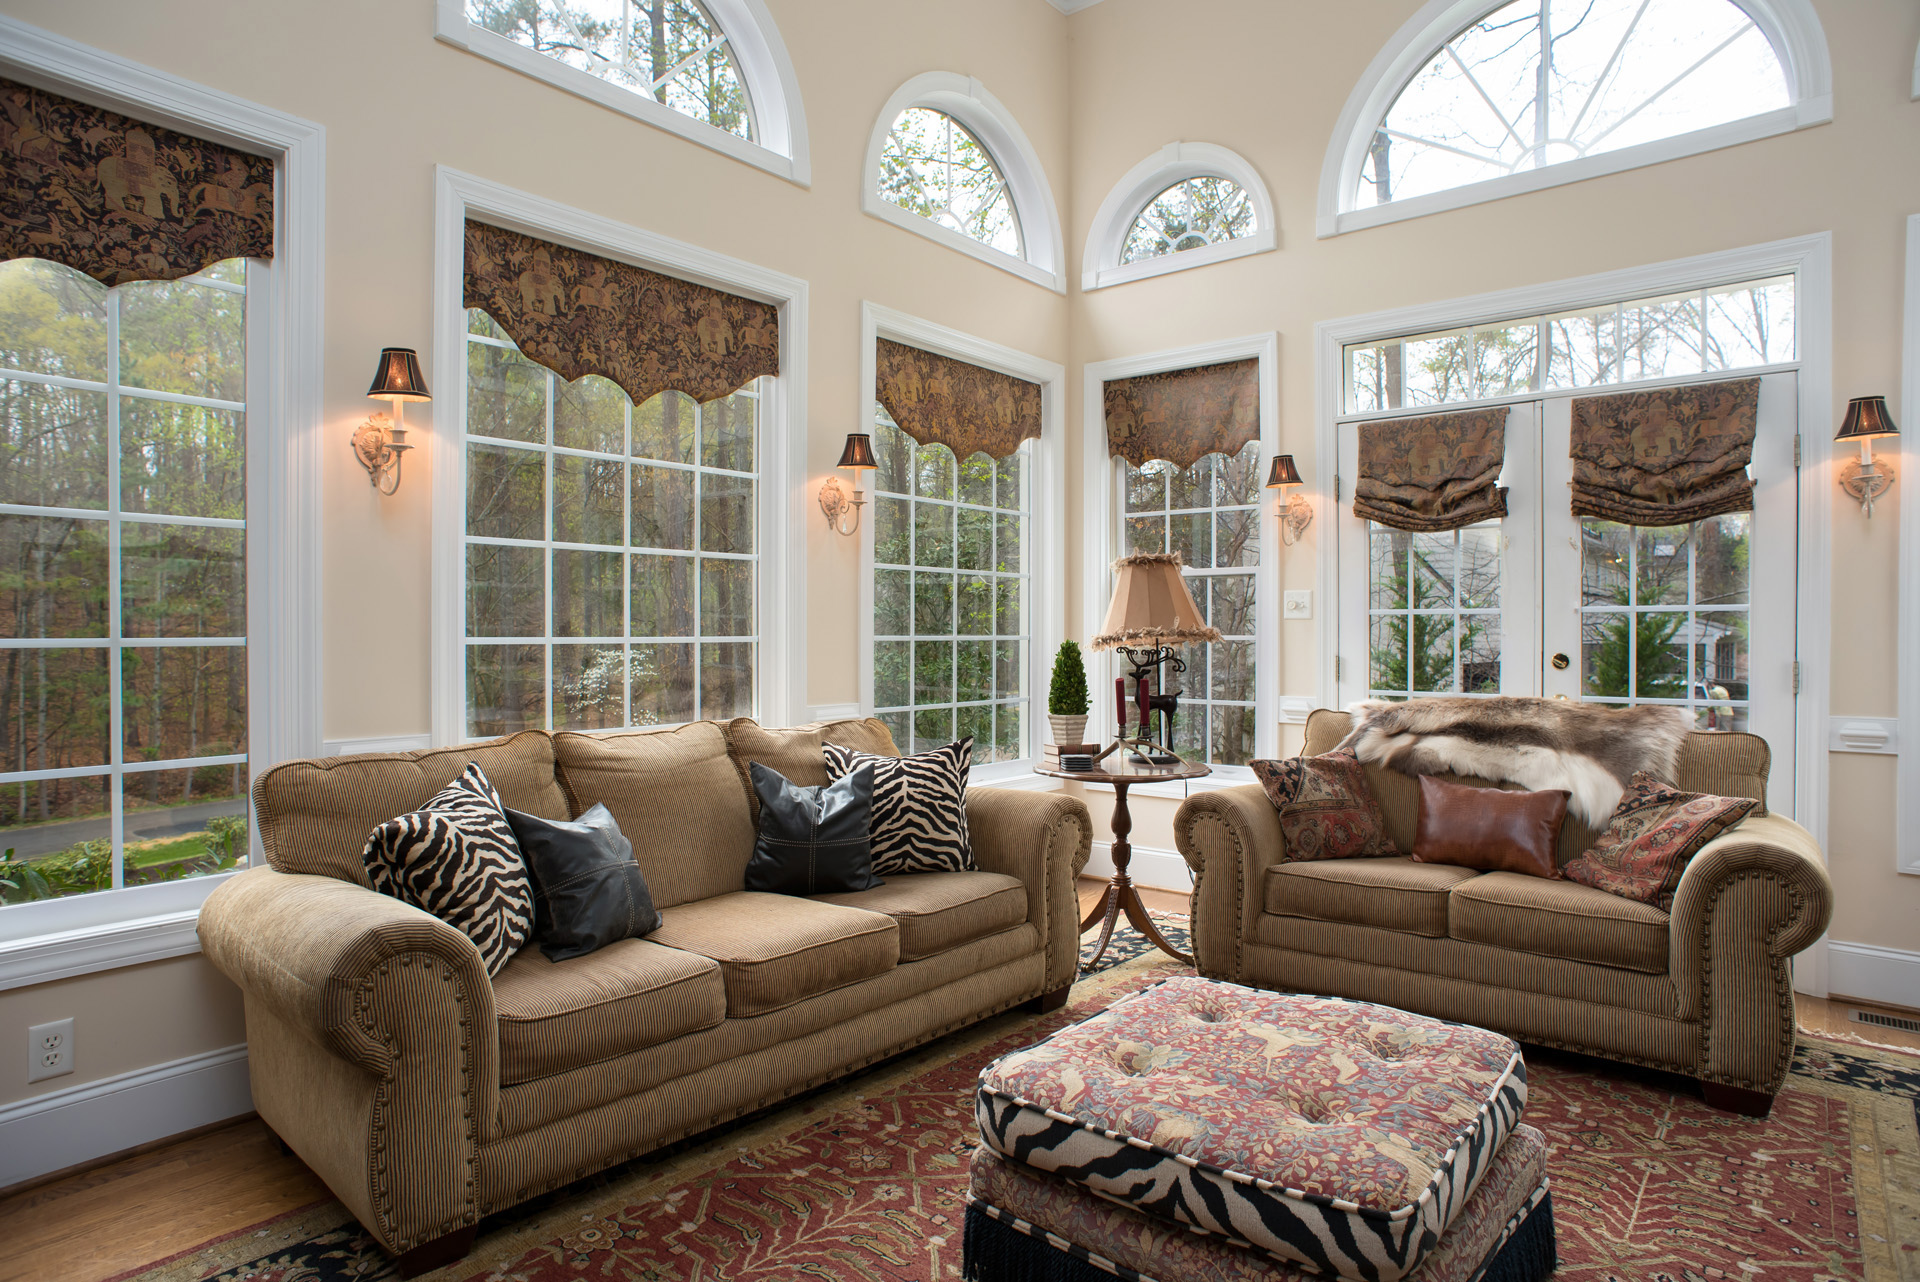 Family Room Decor and Design Photography